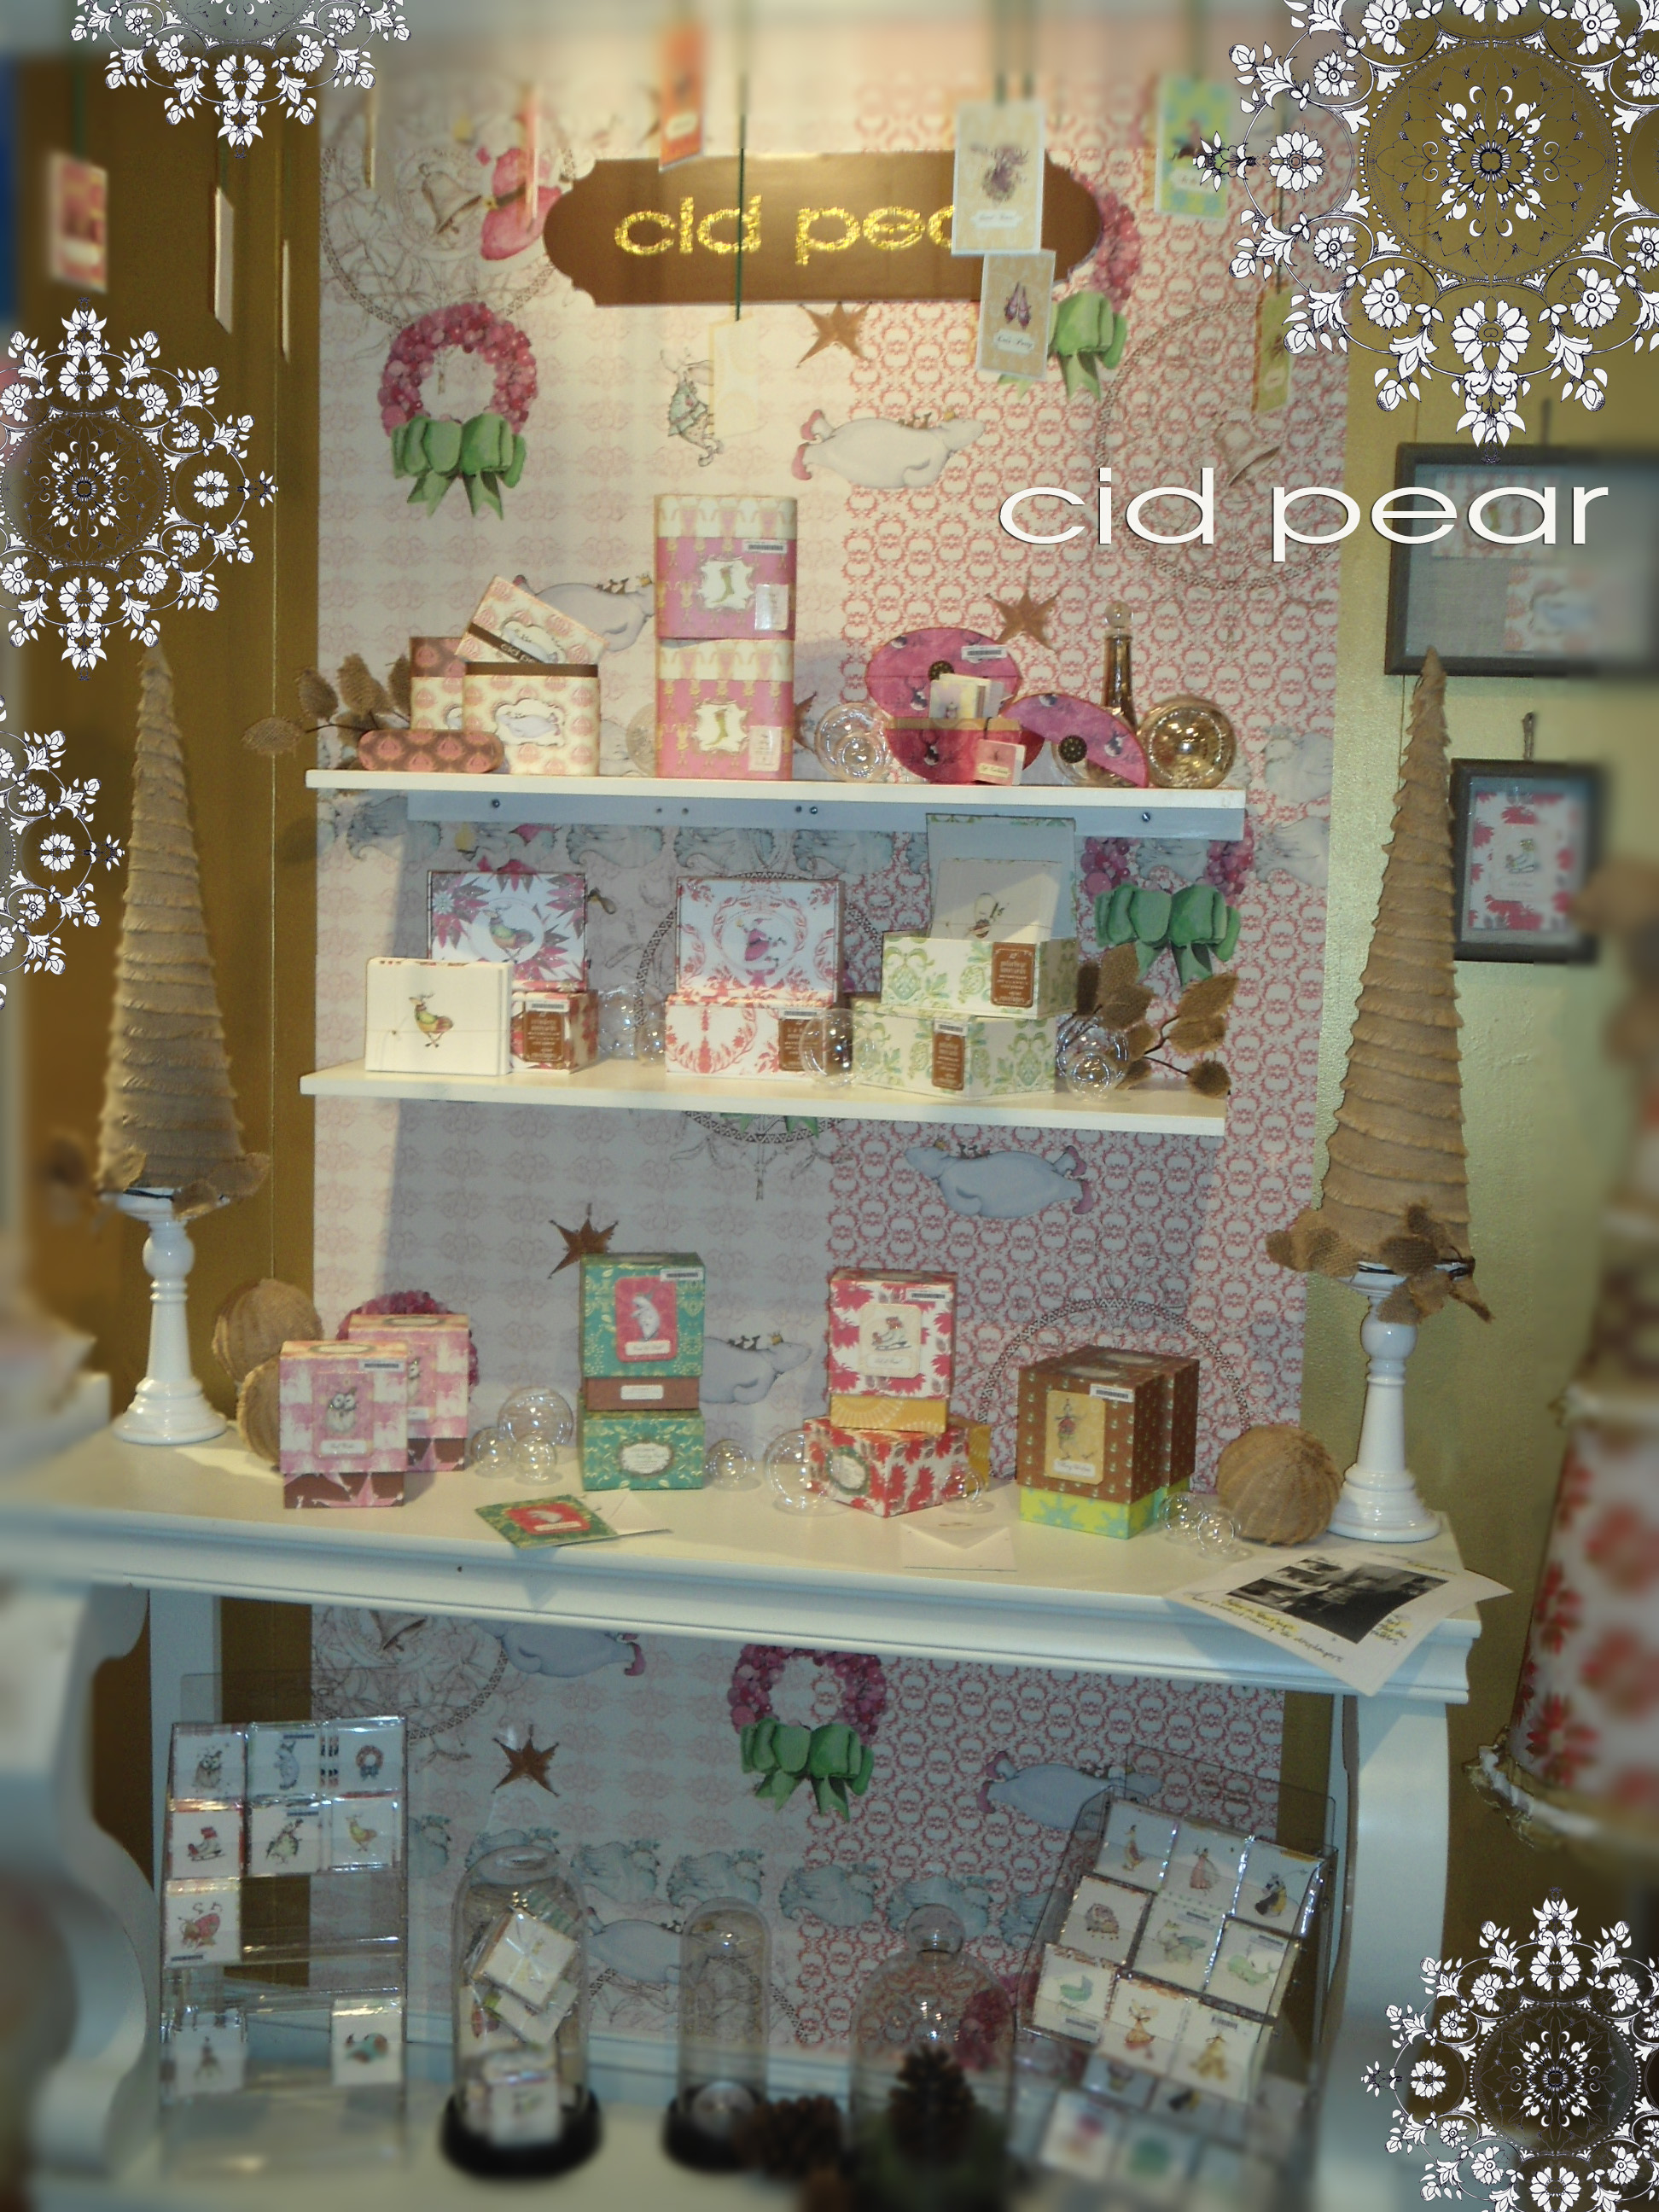 cidpear+showroom.jpg